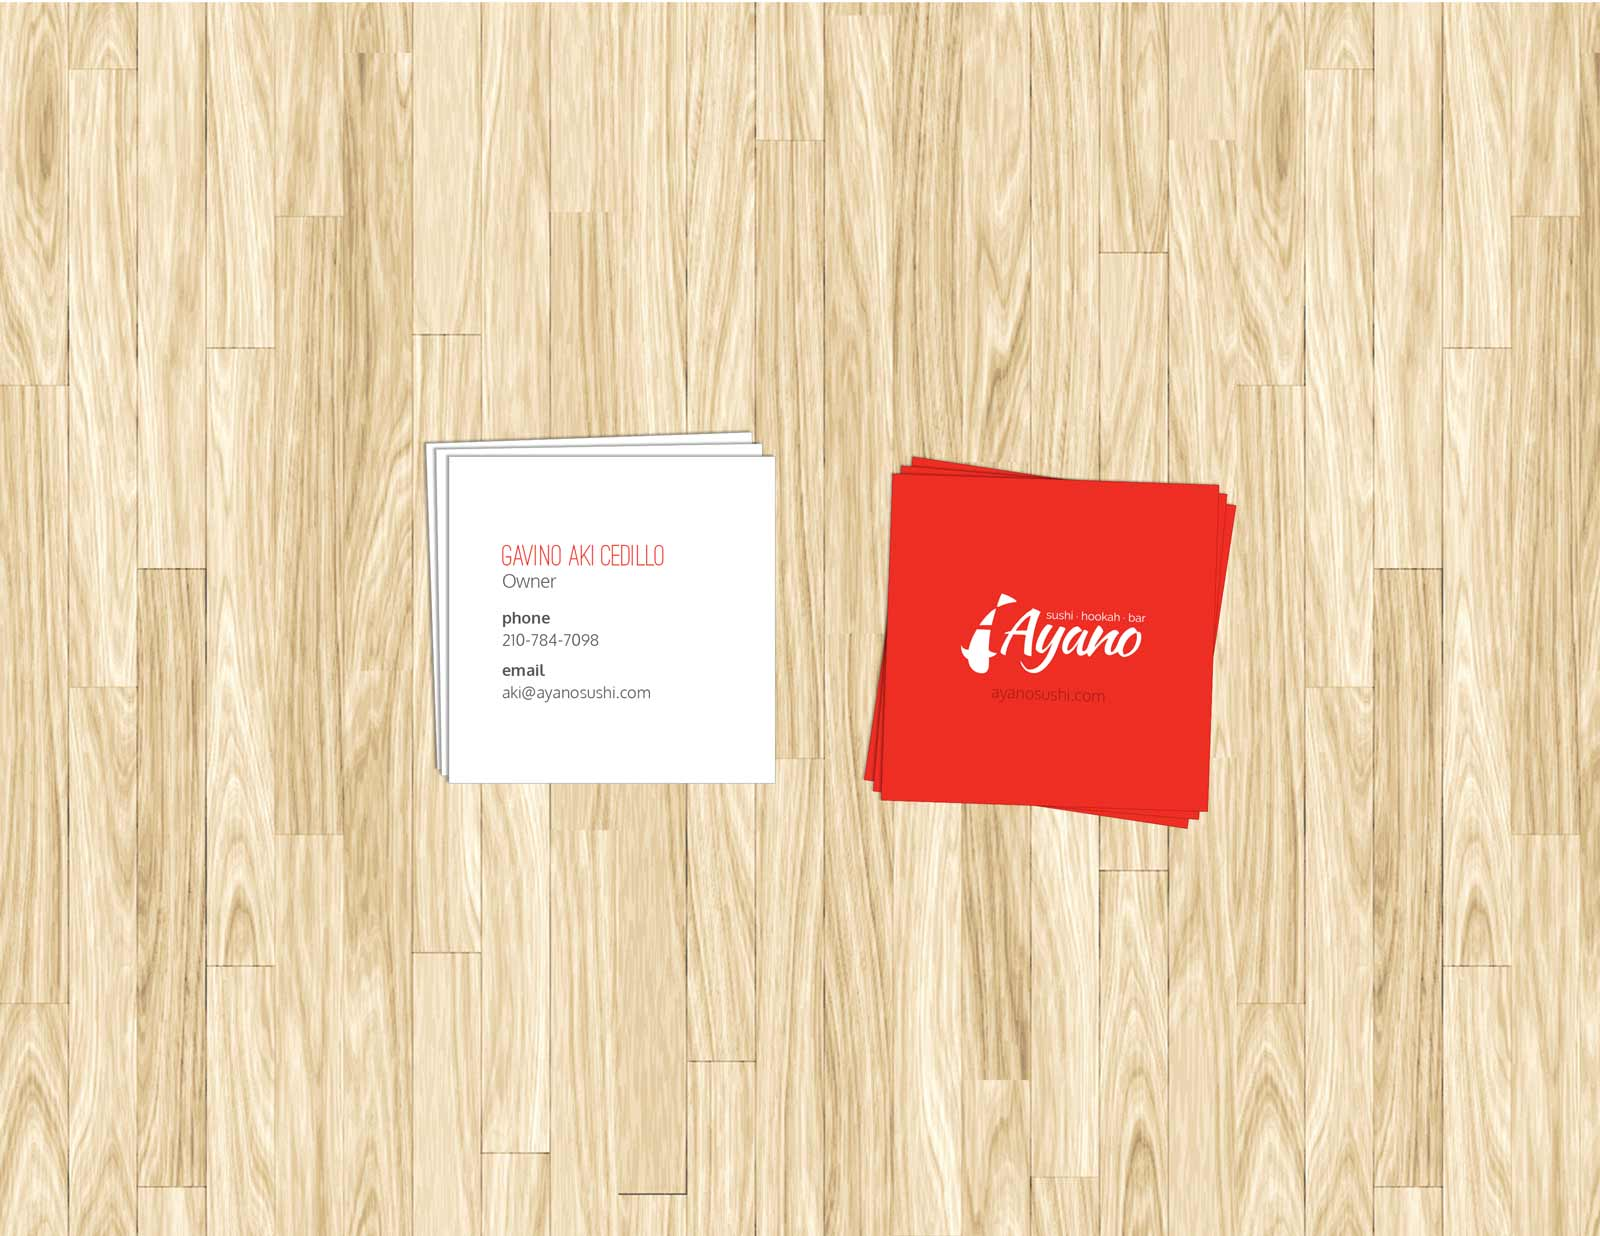 Tips for designing a great business card concept incarnate ayano sushi business cards reheart Images